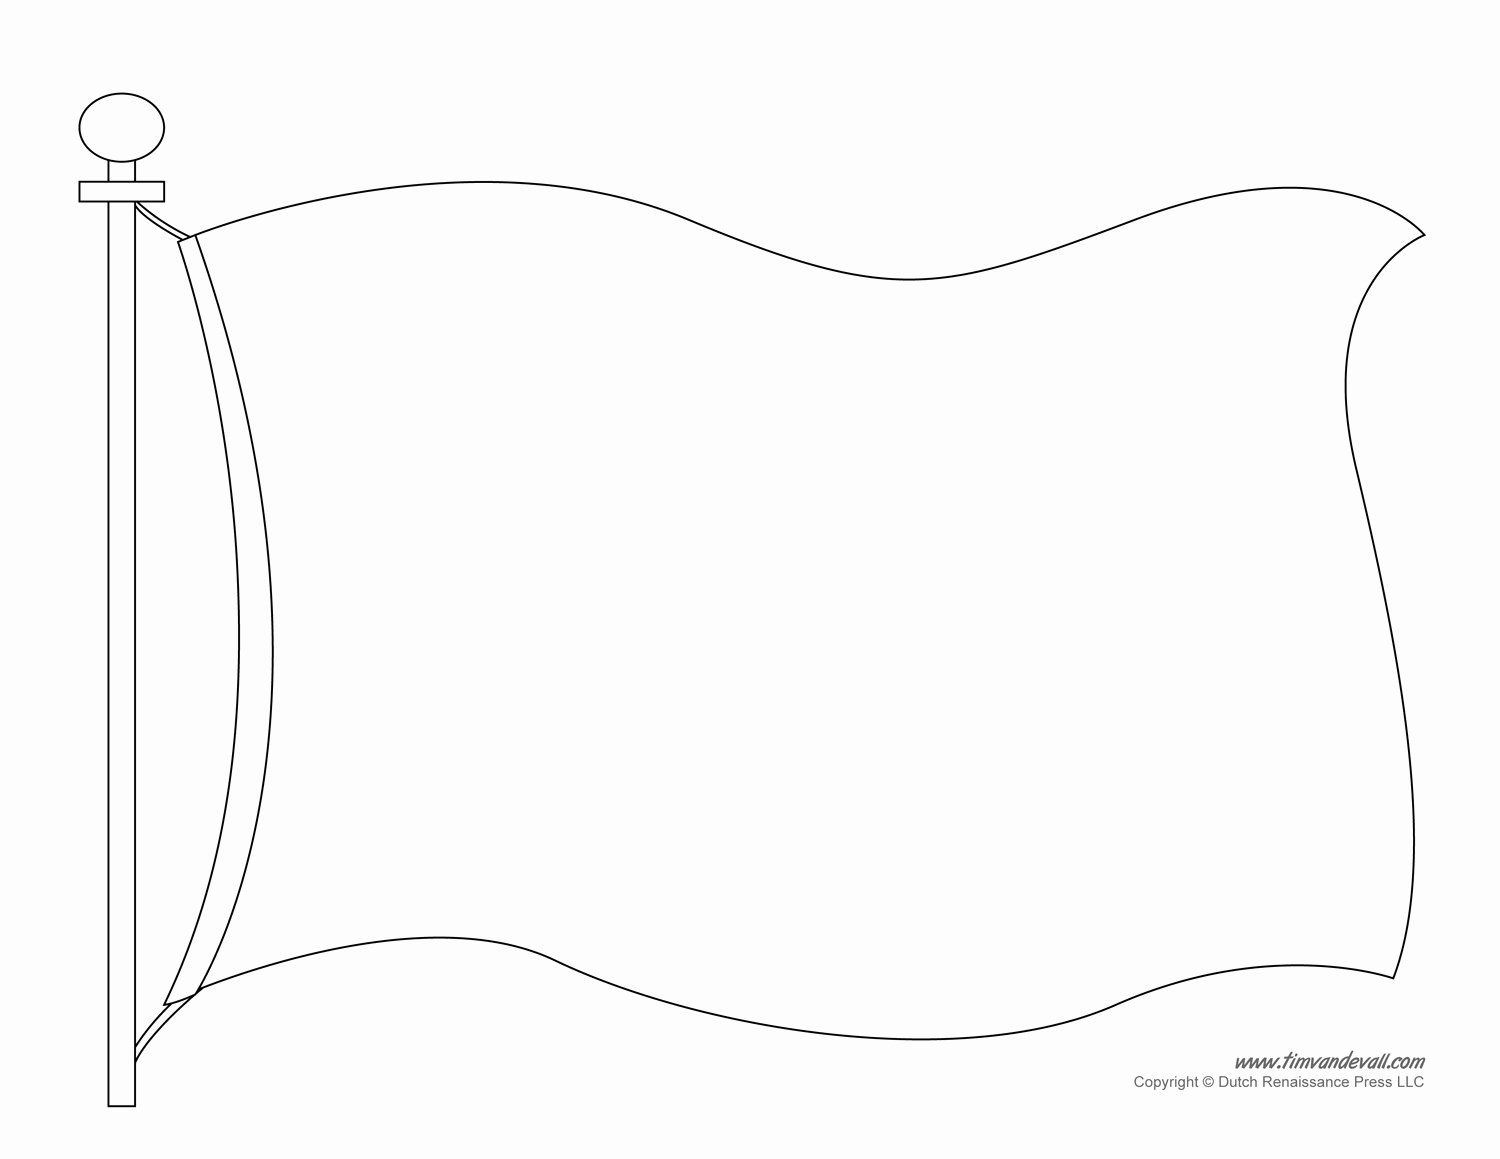 Pirate Flag Coloring Page Best Of Design Your Own Flag Template Free Templates Download Line In 2020 Flag Template Flag Printable Make Your Own Flag